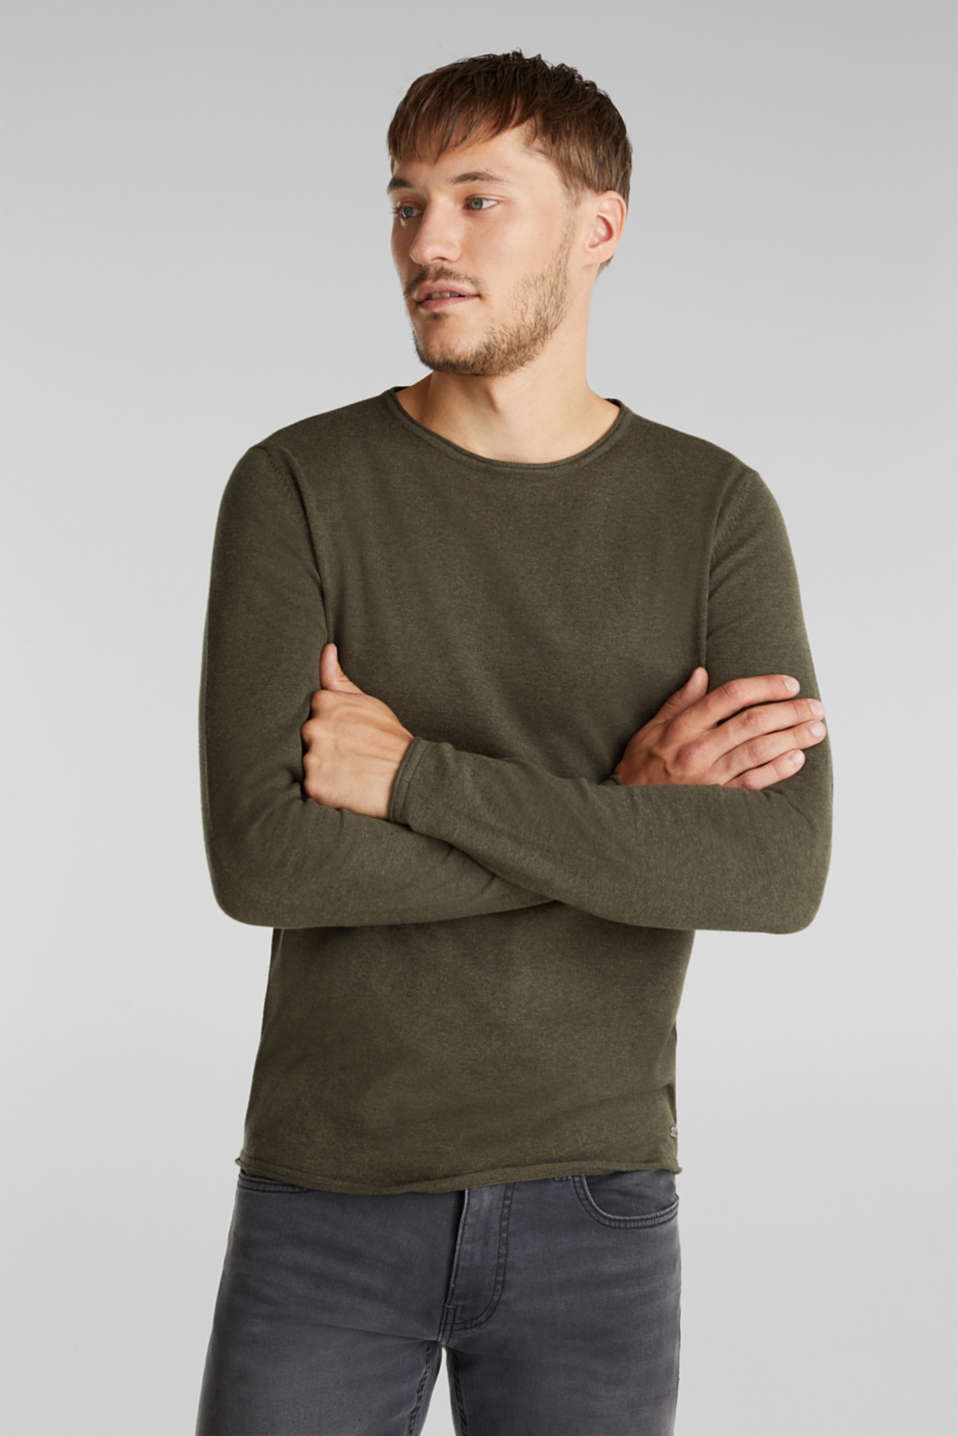 Fine knit cotton jumper, KHAKI GREEN, detail image number 0